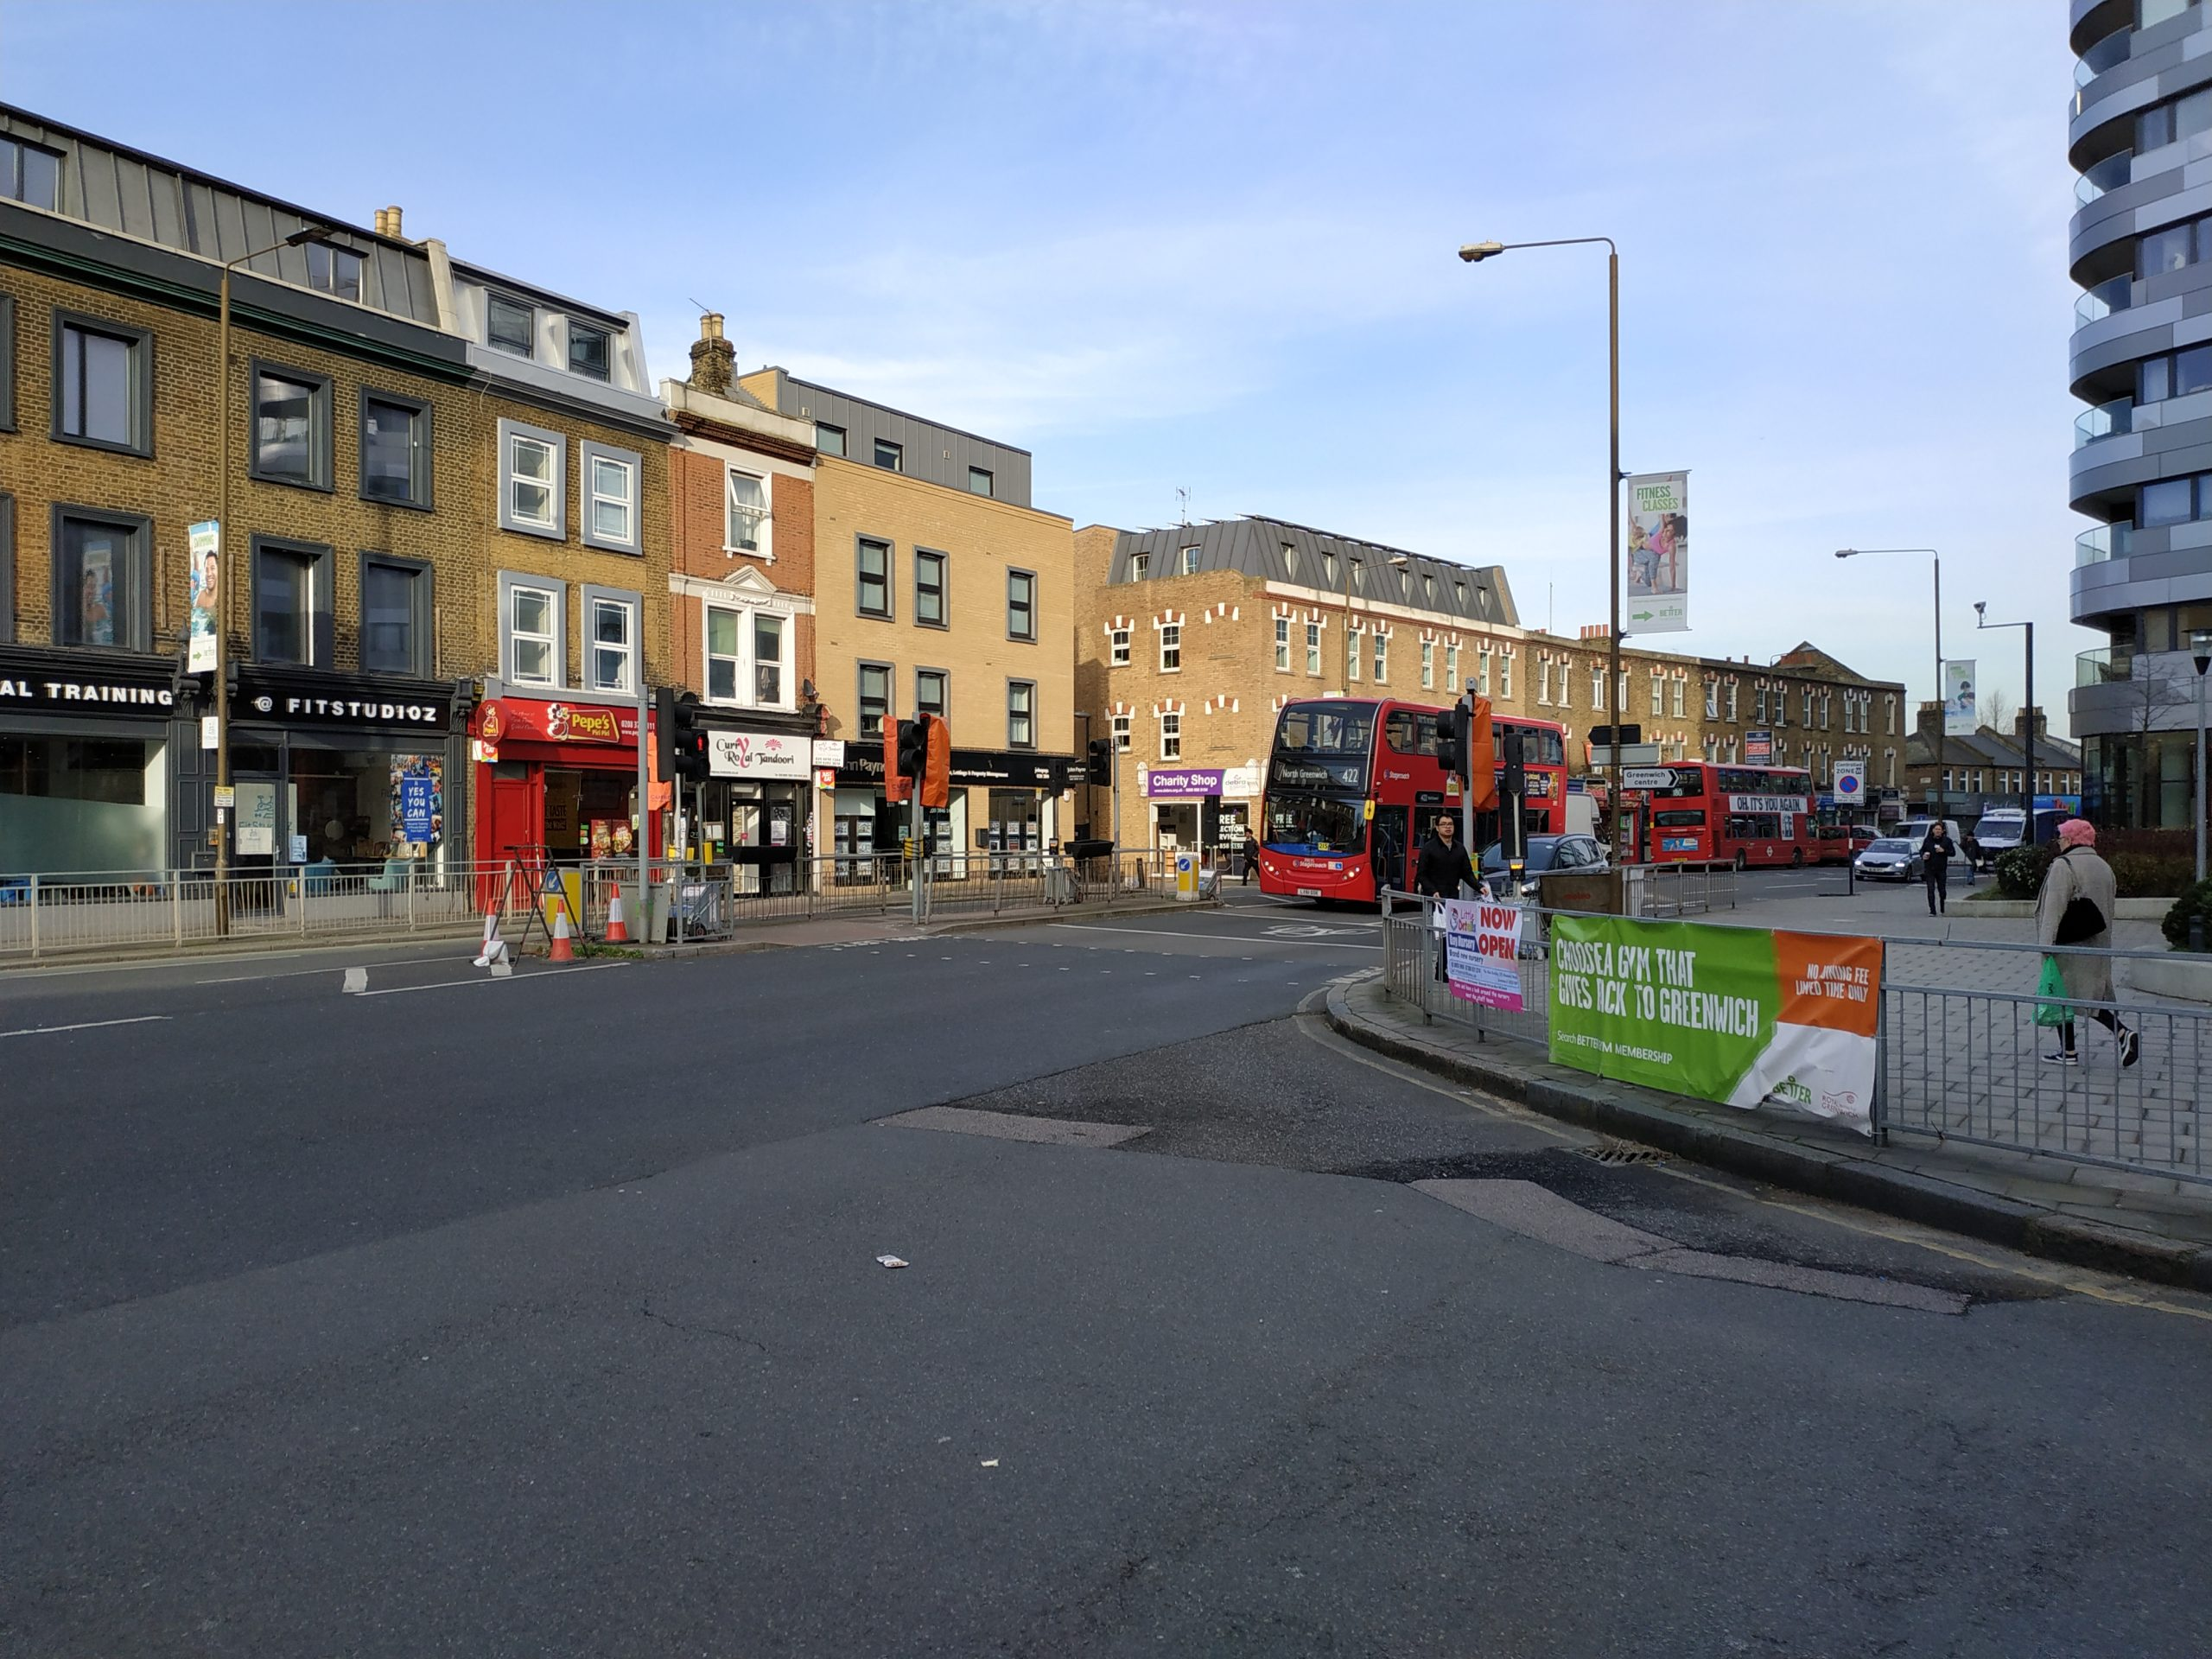 New street design guide launched by TfL but will councils follow it?